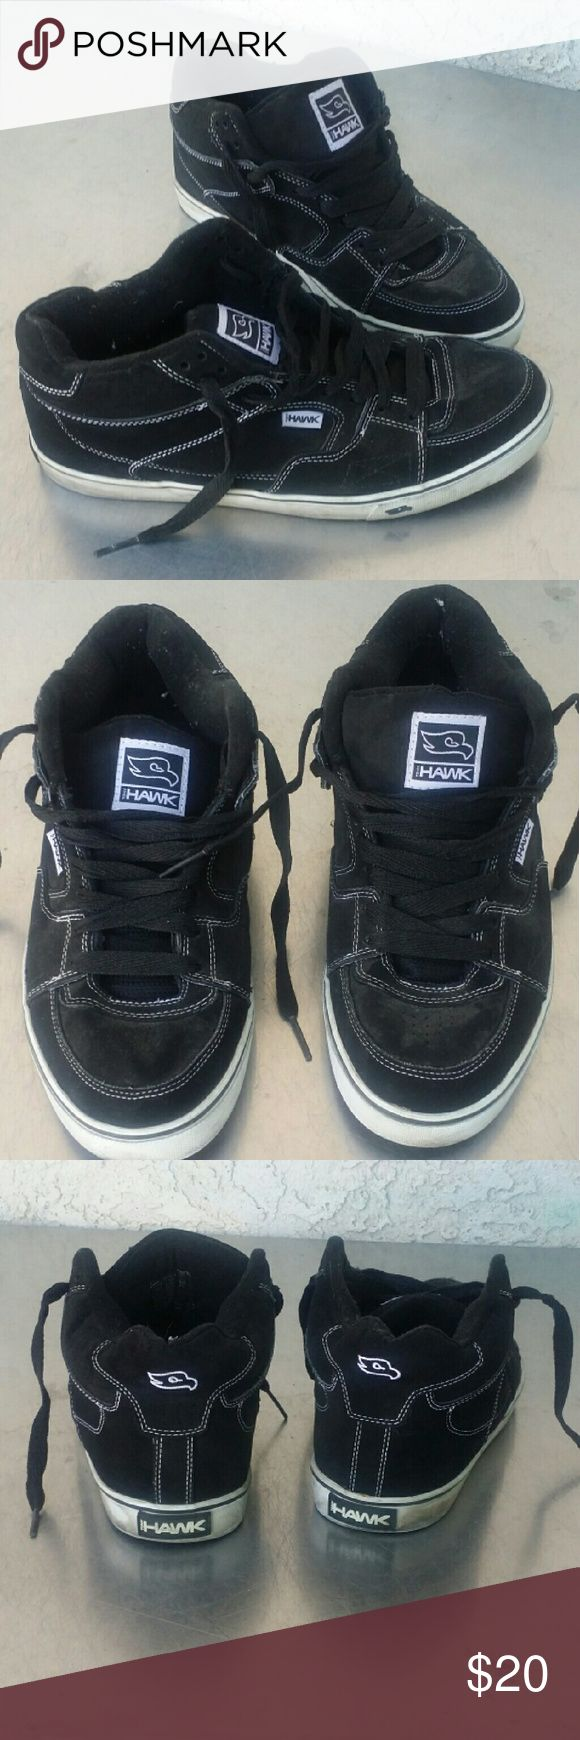 Mens Tony Hawk Shoes? Black, men's shoes by Tony Hawk , size 12 , medium width, in good condition. Tony Hawk Shoes